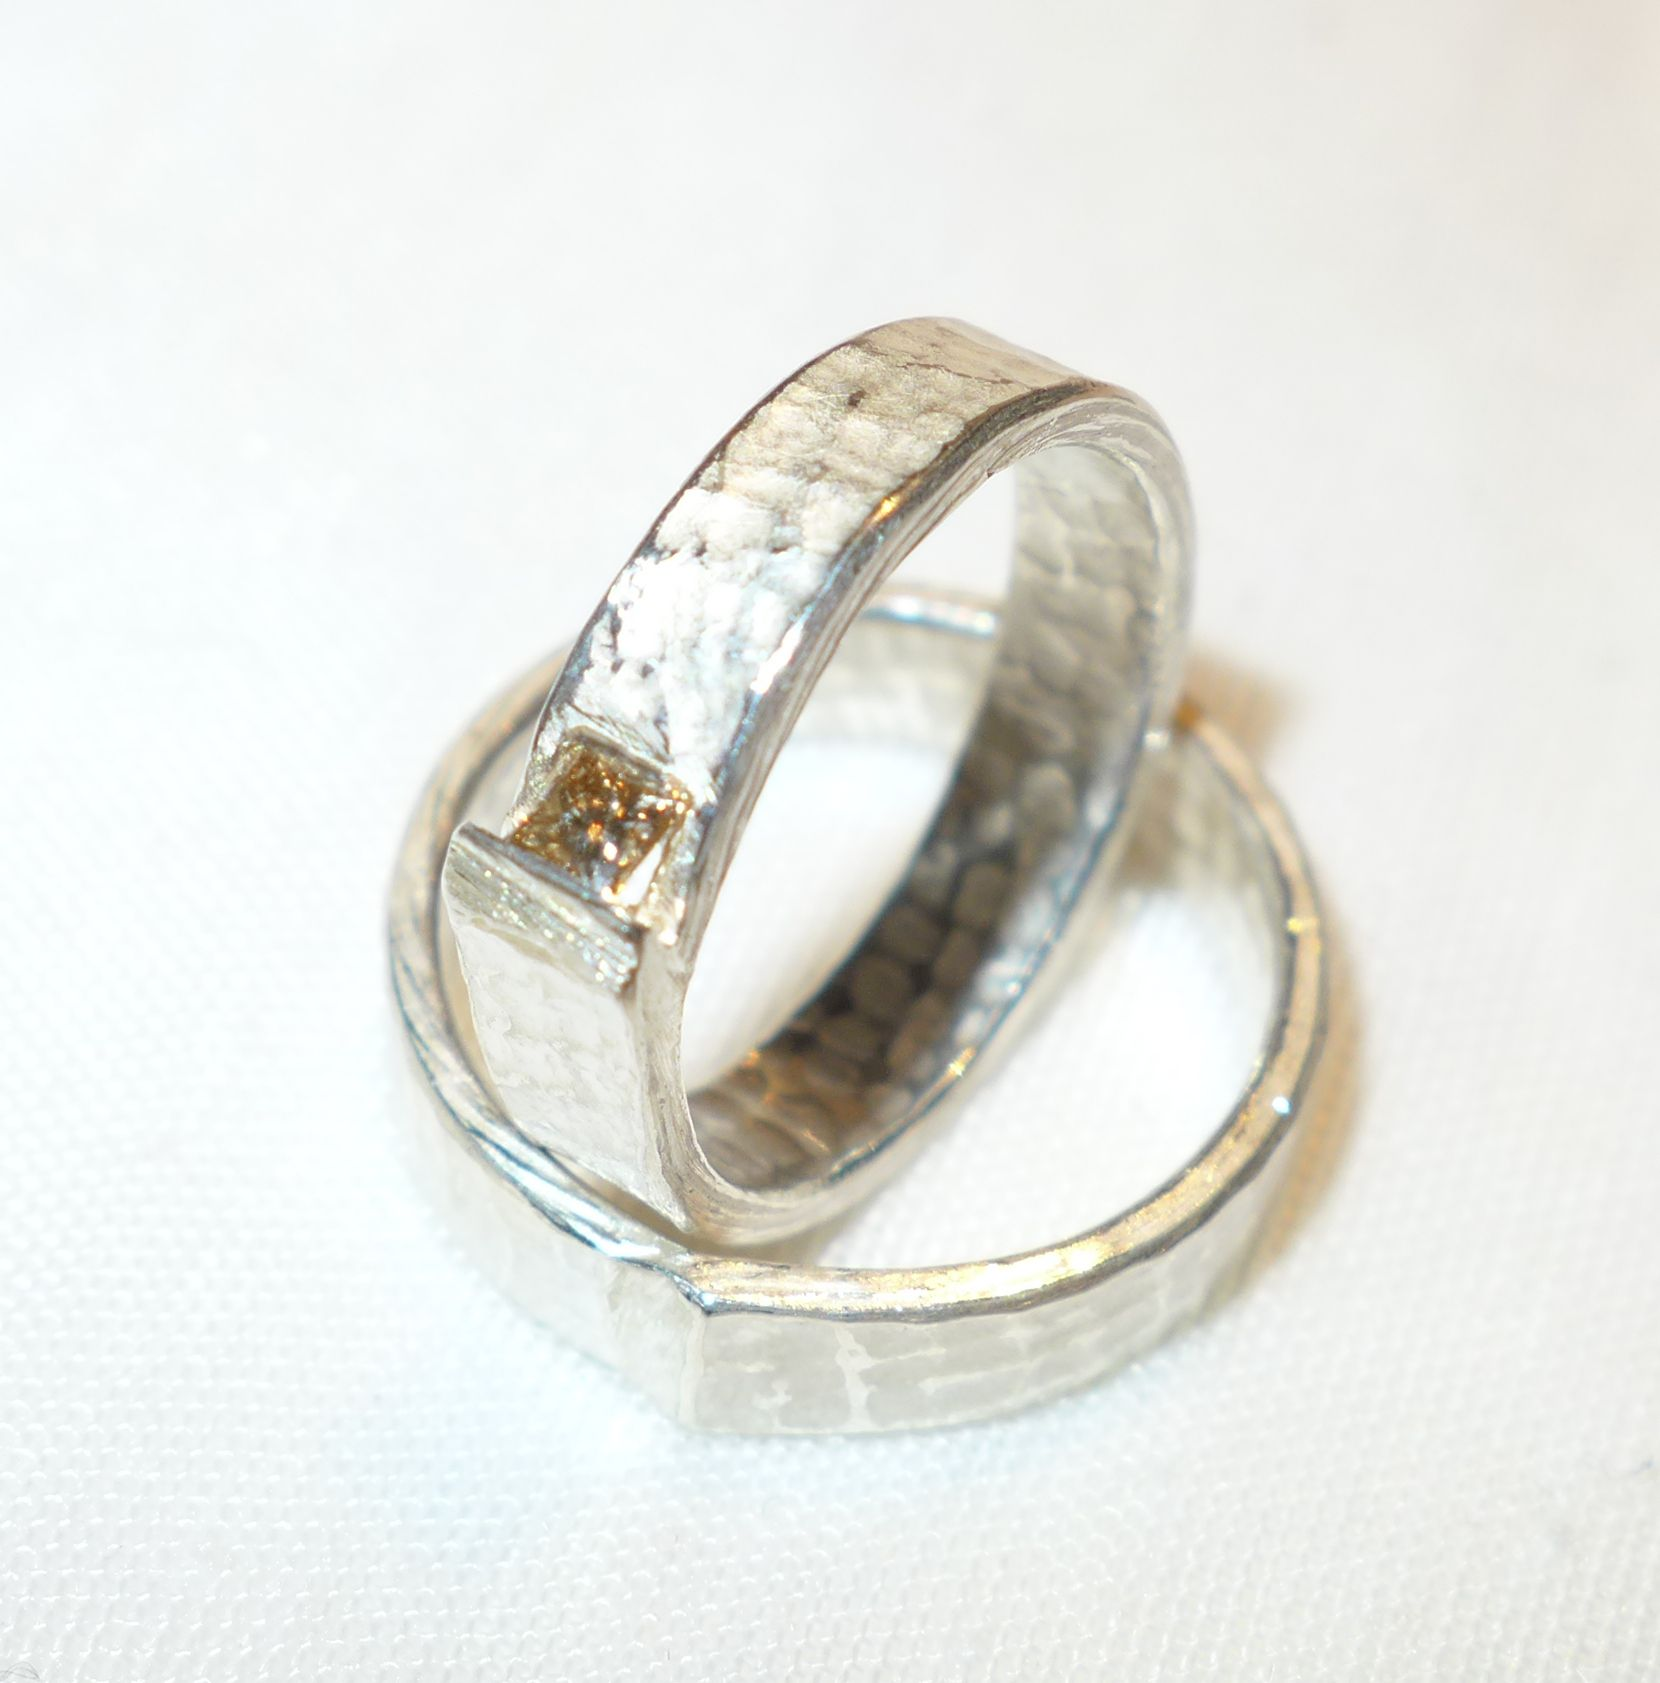 Customized wedding bands with diamond square Custom wedding bands